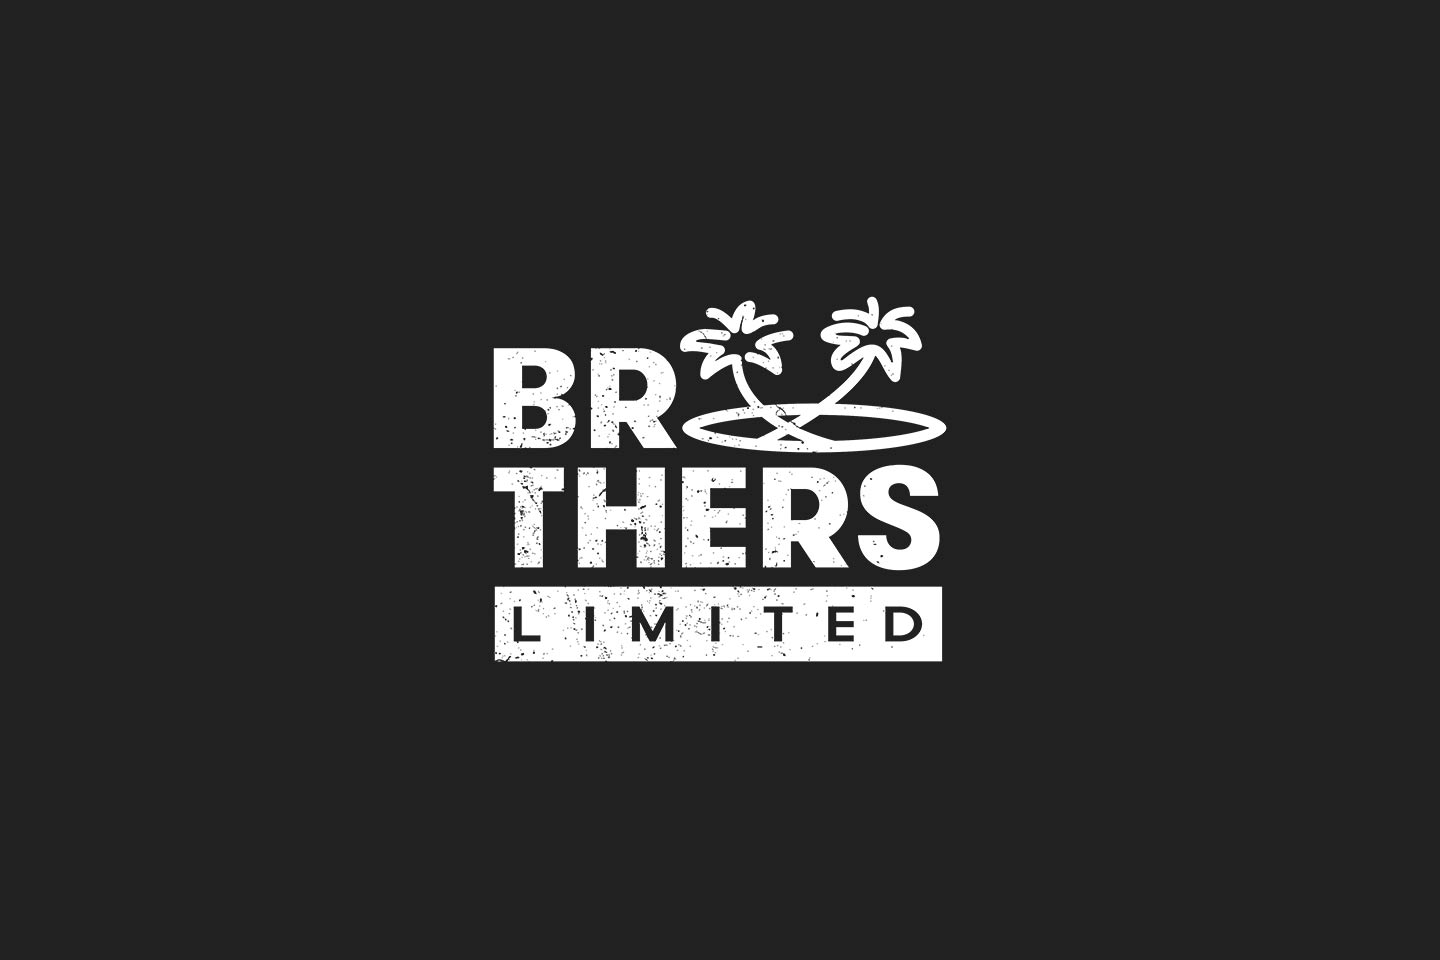 limited_brothers_avatar